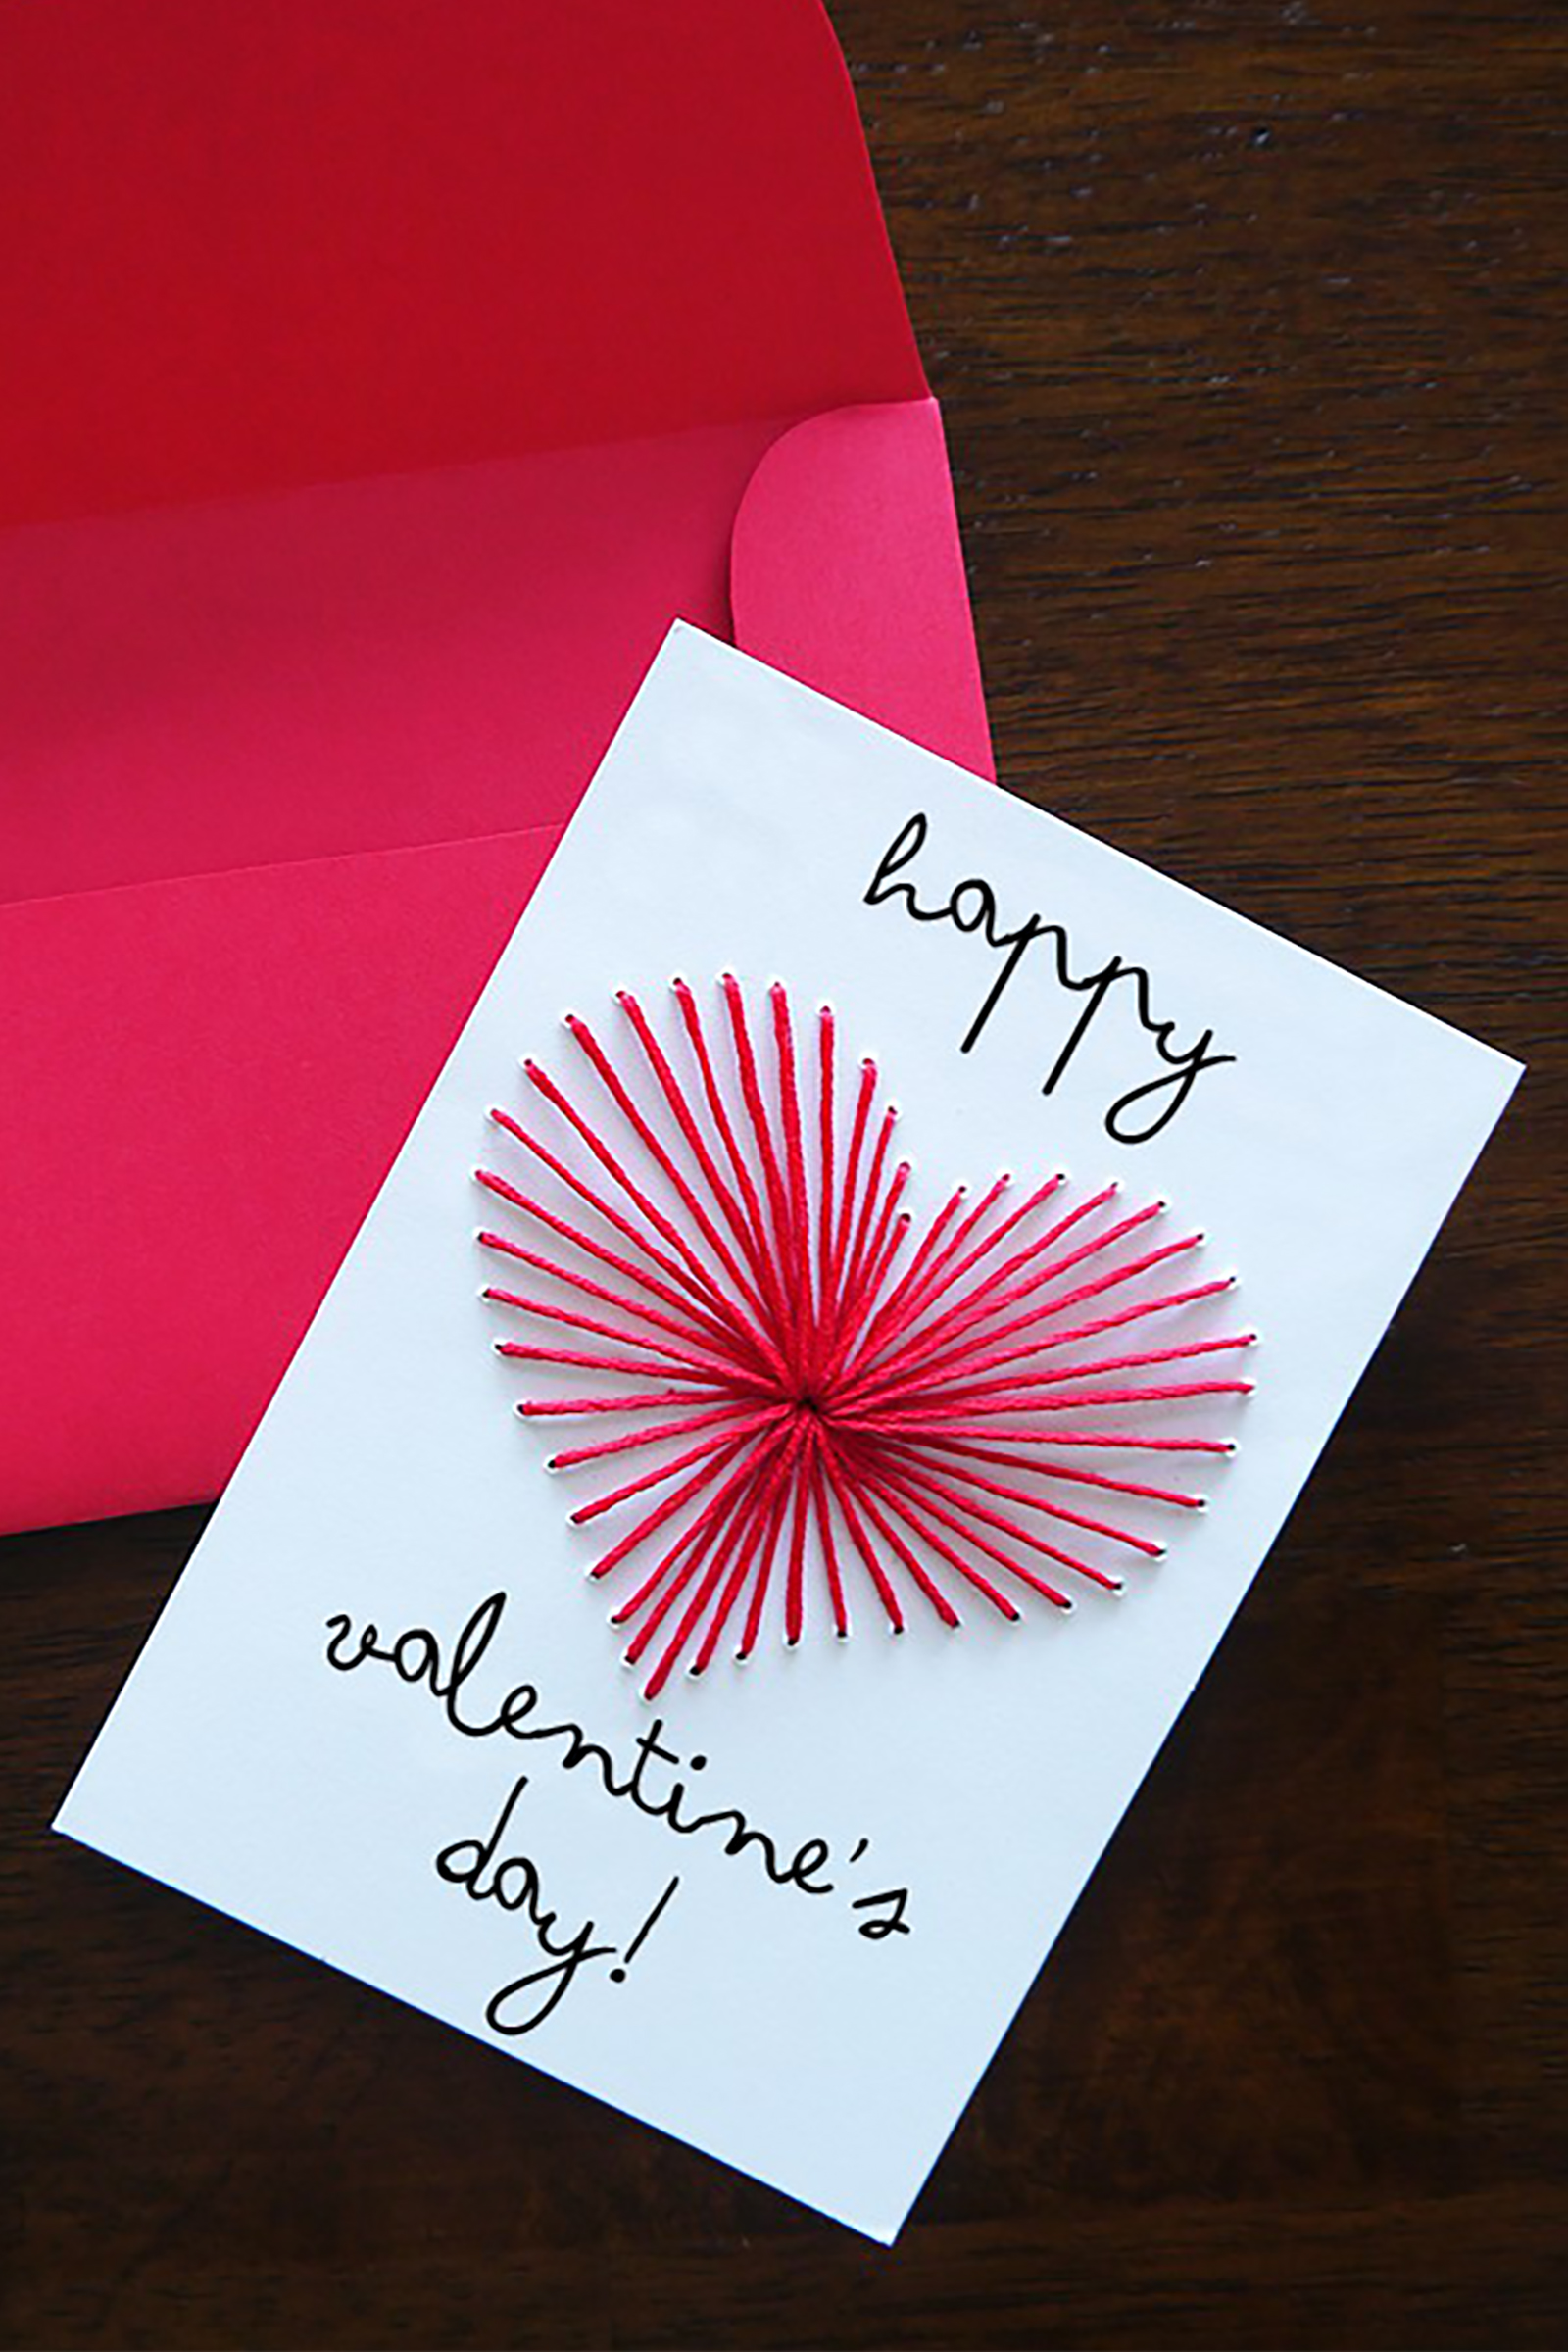 diy valentines cards 26 diy s day cards valentines 30945